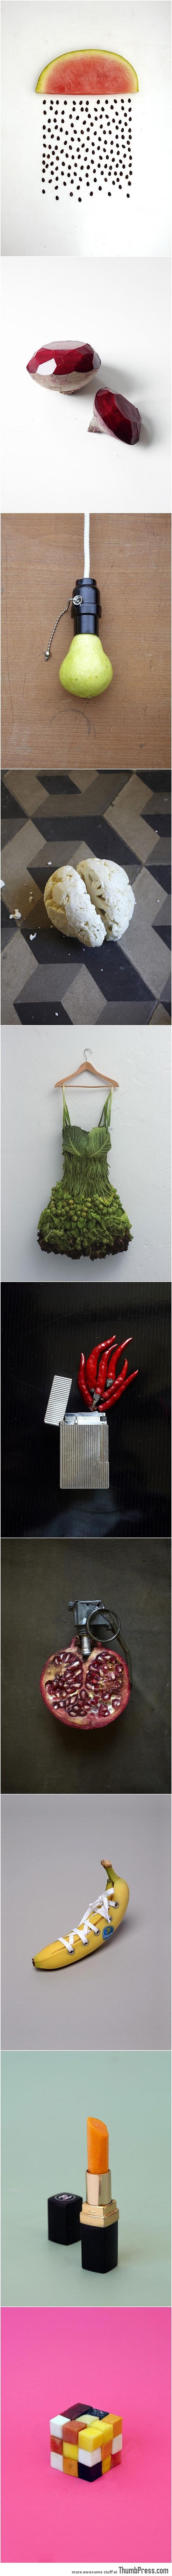 FOOD BY DESIGN.